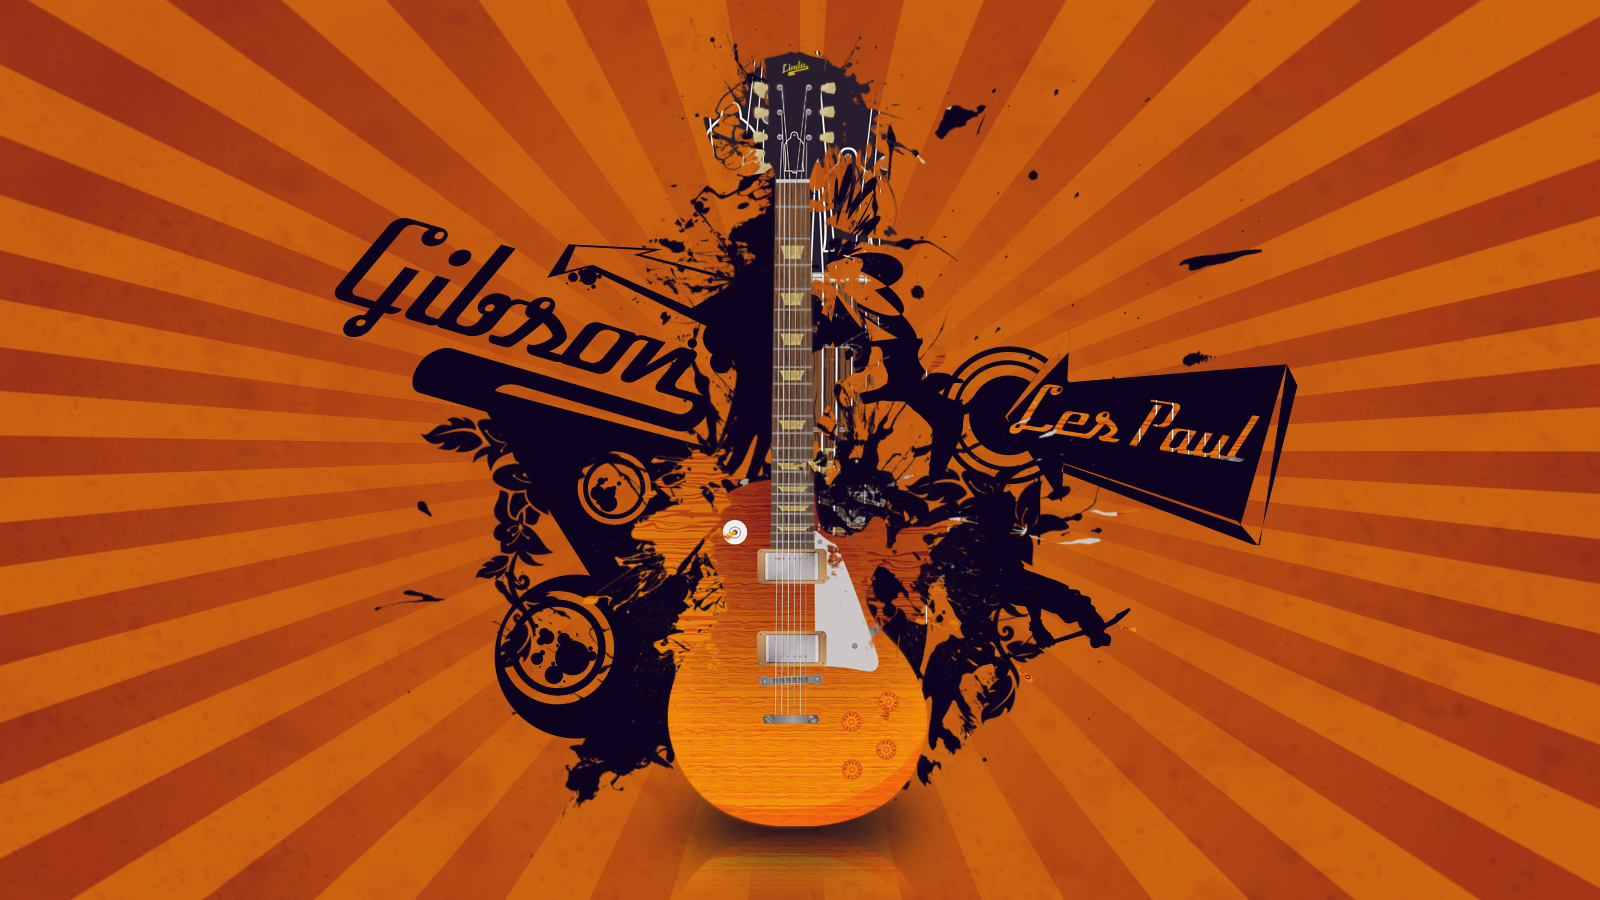 Gibson Les Paul Wallpaper by blackcan1122 on deviantART